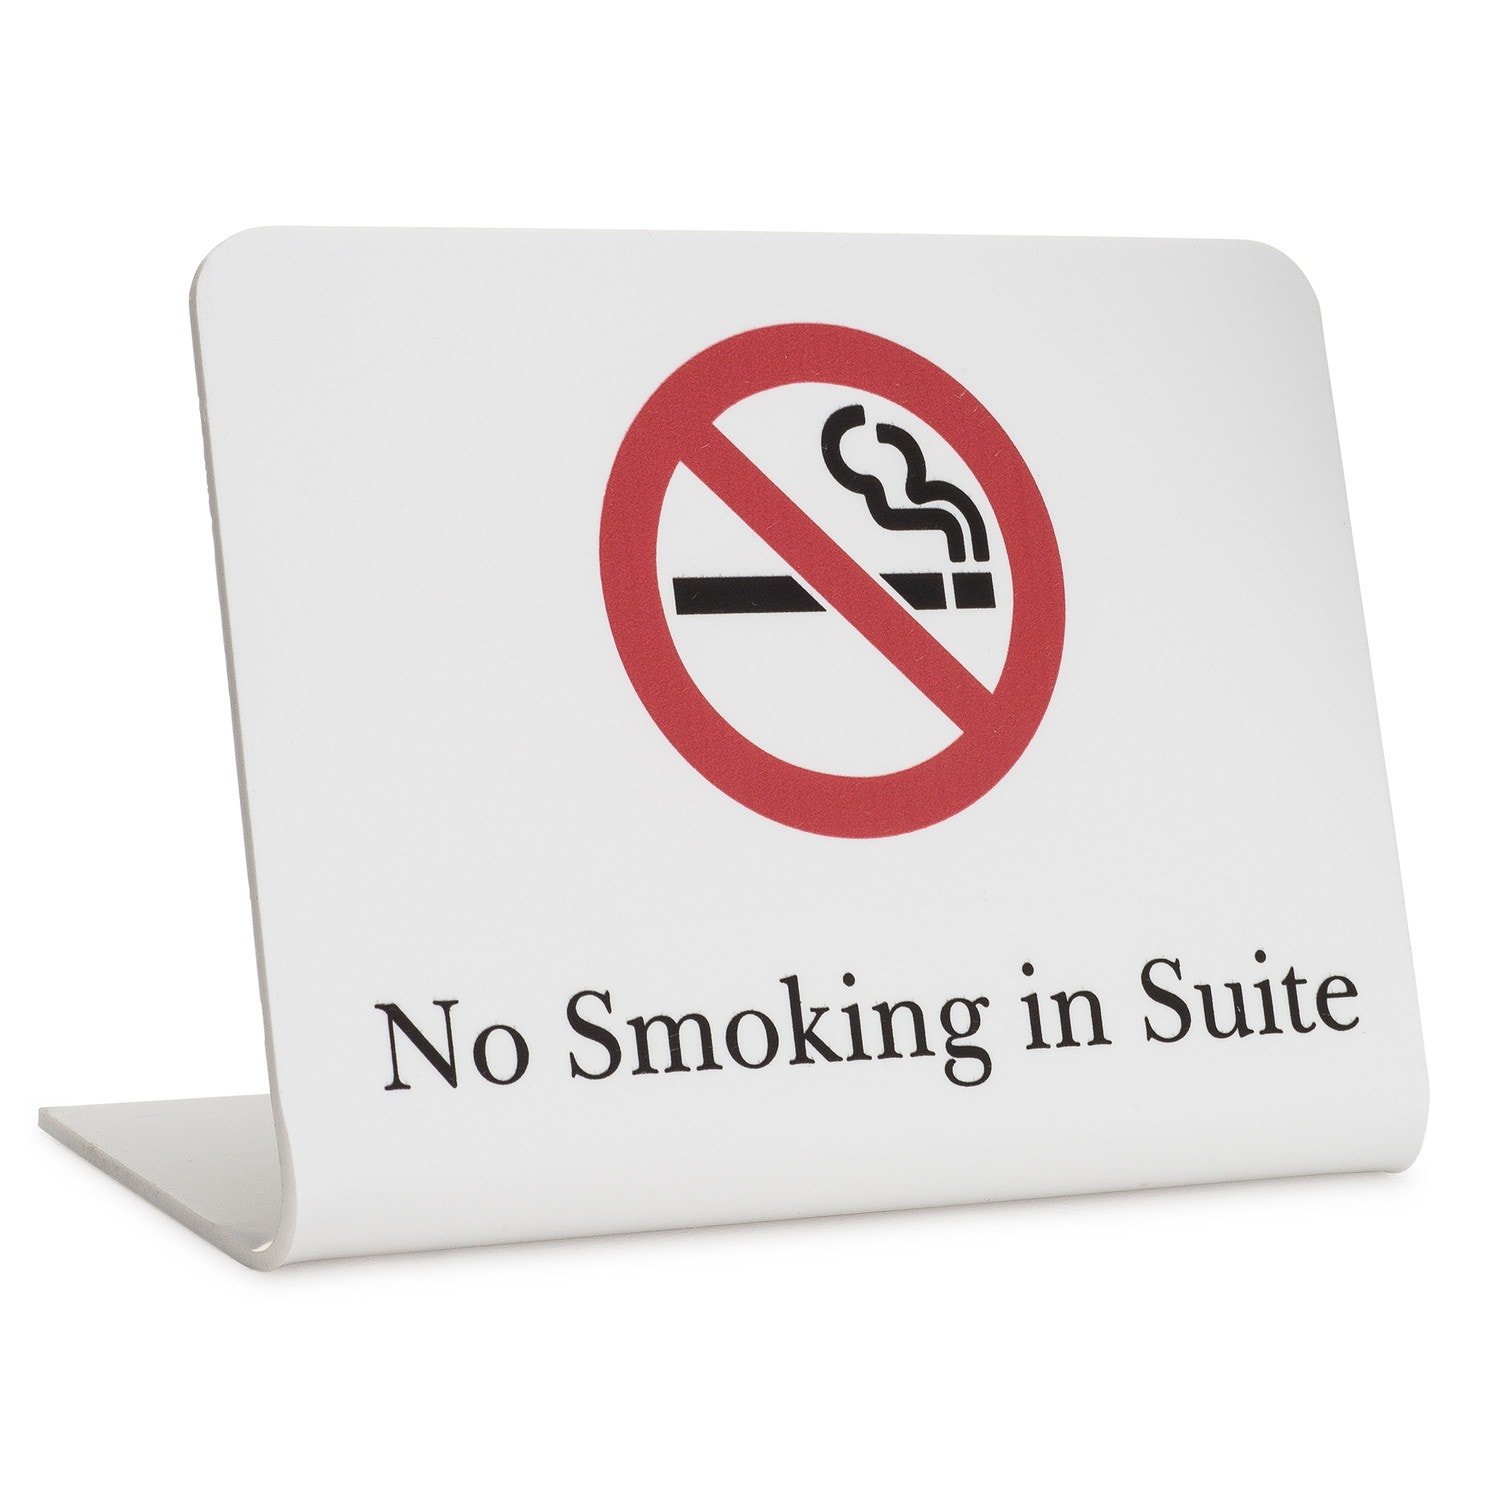 image about Printable No Smoking Signs titled Symptoms, Registry, NO Smoking cigarettes Inside SUITE, Tilt Structure